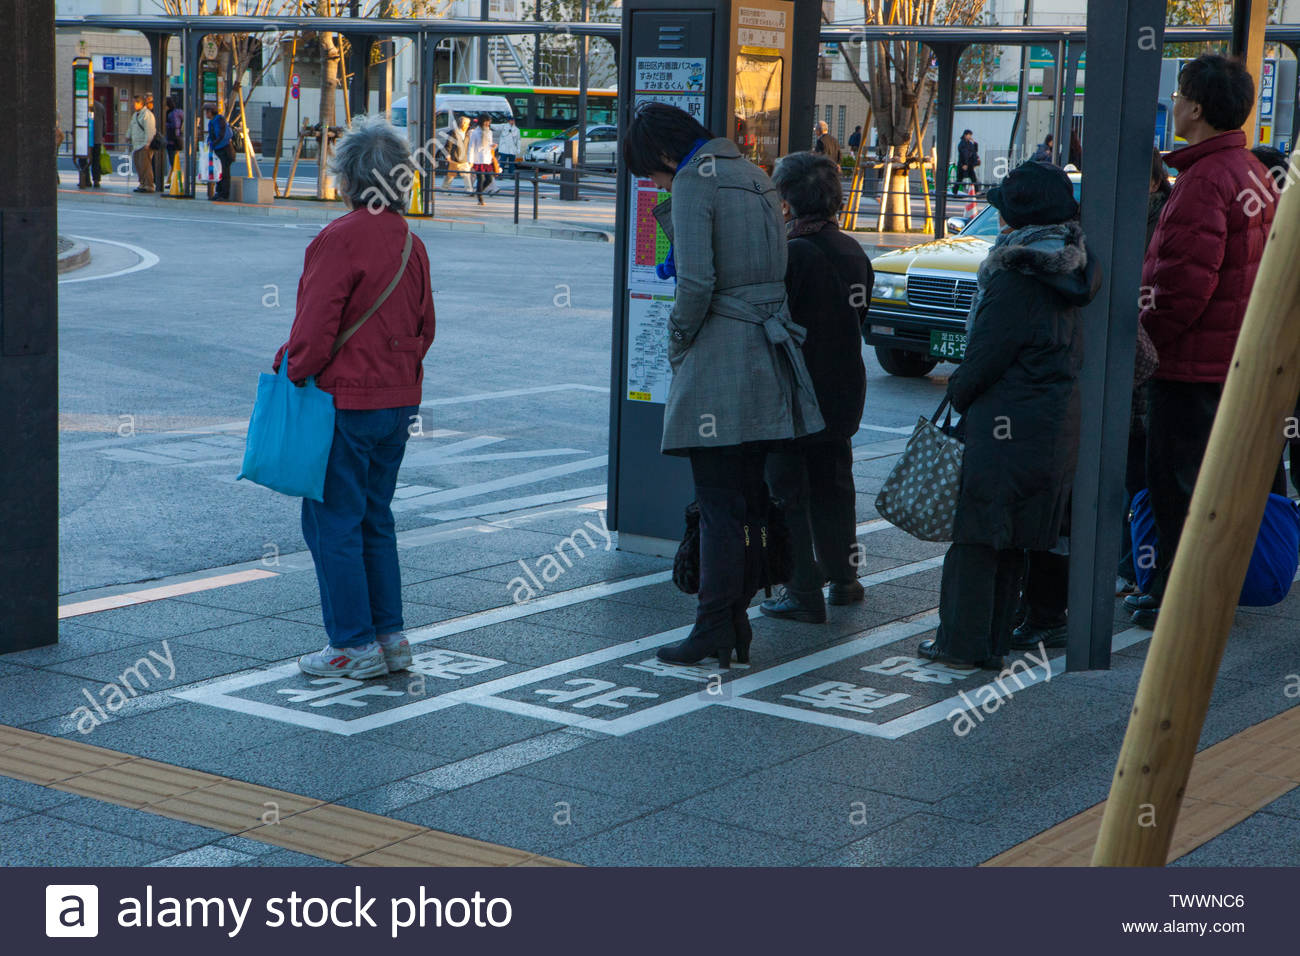 Tokyo, Japan - November 26, 2012: People stand in clear sign posted lines waiting for the bus at the stop. Everything well organised - Stock Image